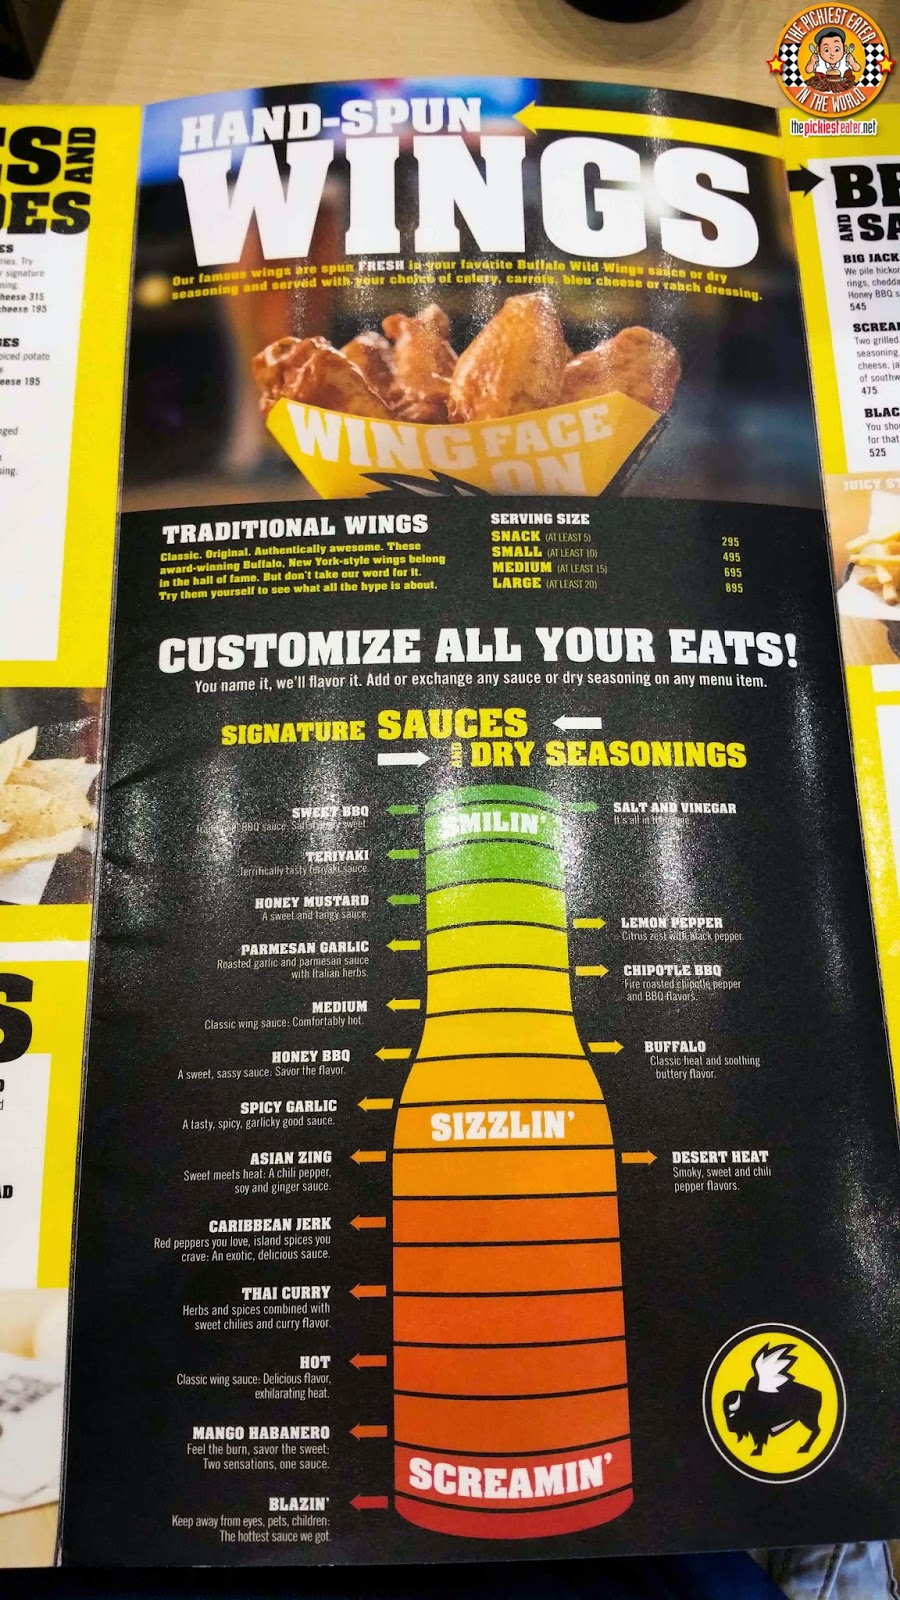 the pickiest eater in the world: going wild at buffalo wild wings